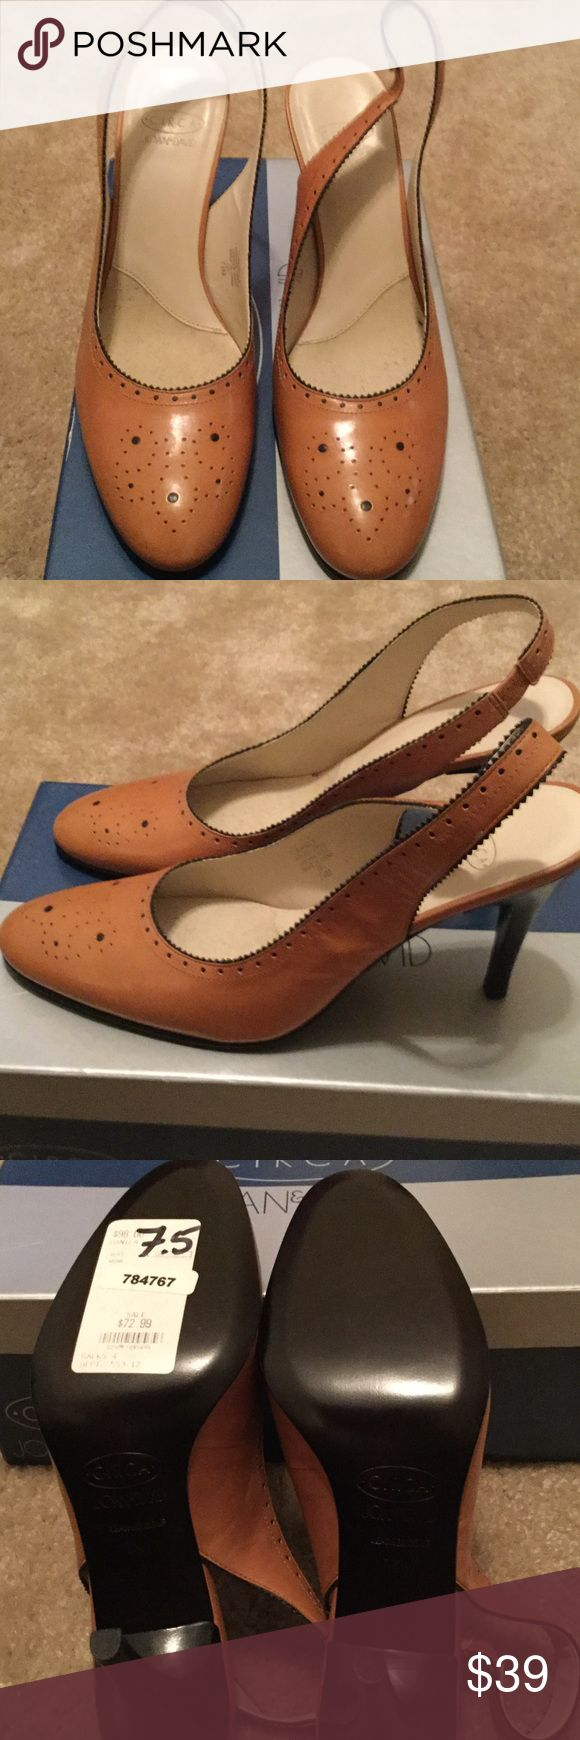 CIRCA Joan & David Leather Slingback New in box. CIRCA Joan & David carmel with black trim leather sling back. These shoes are beautiful. Size 7 1/2 M . Joan & David Shoes Heels